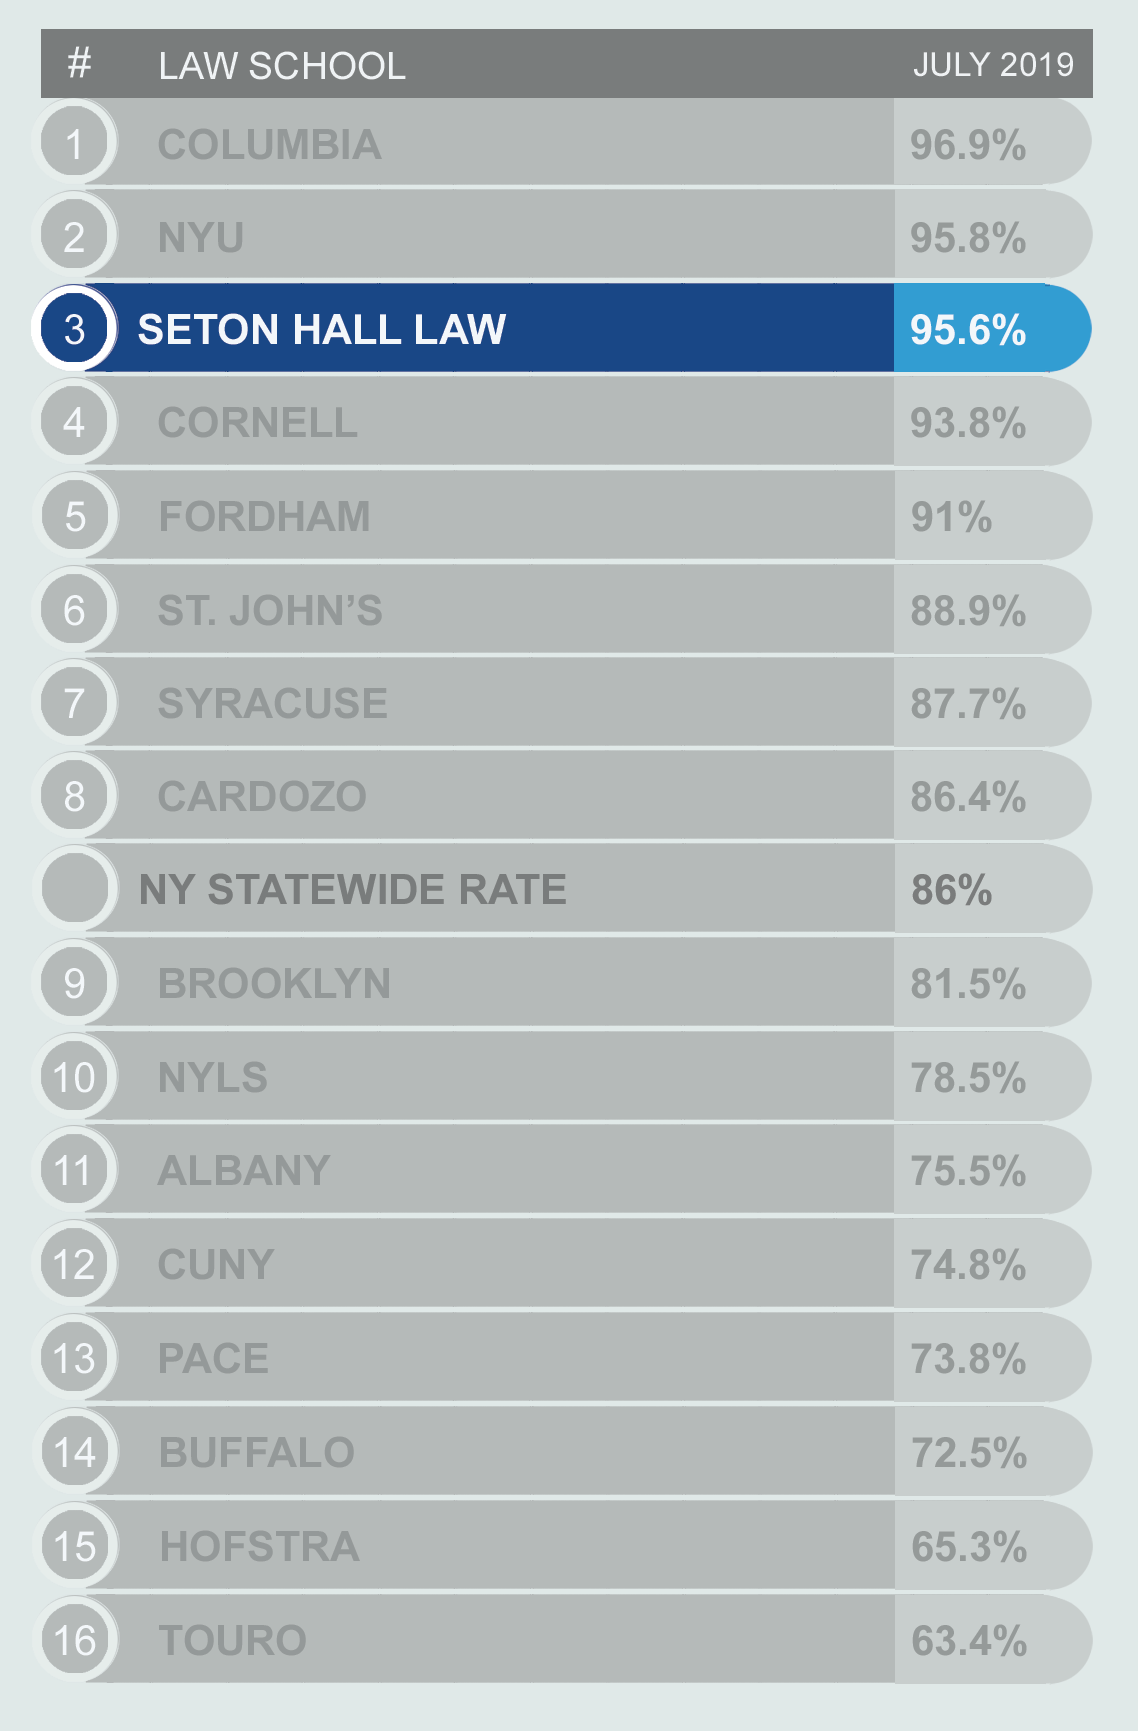 New York Bar Exam Pass Rates (2019)